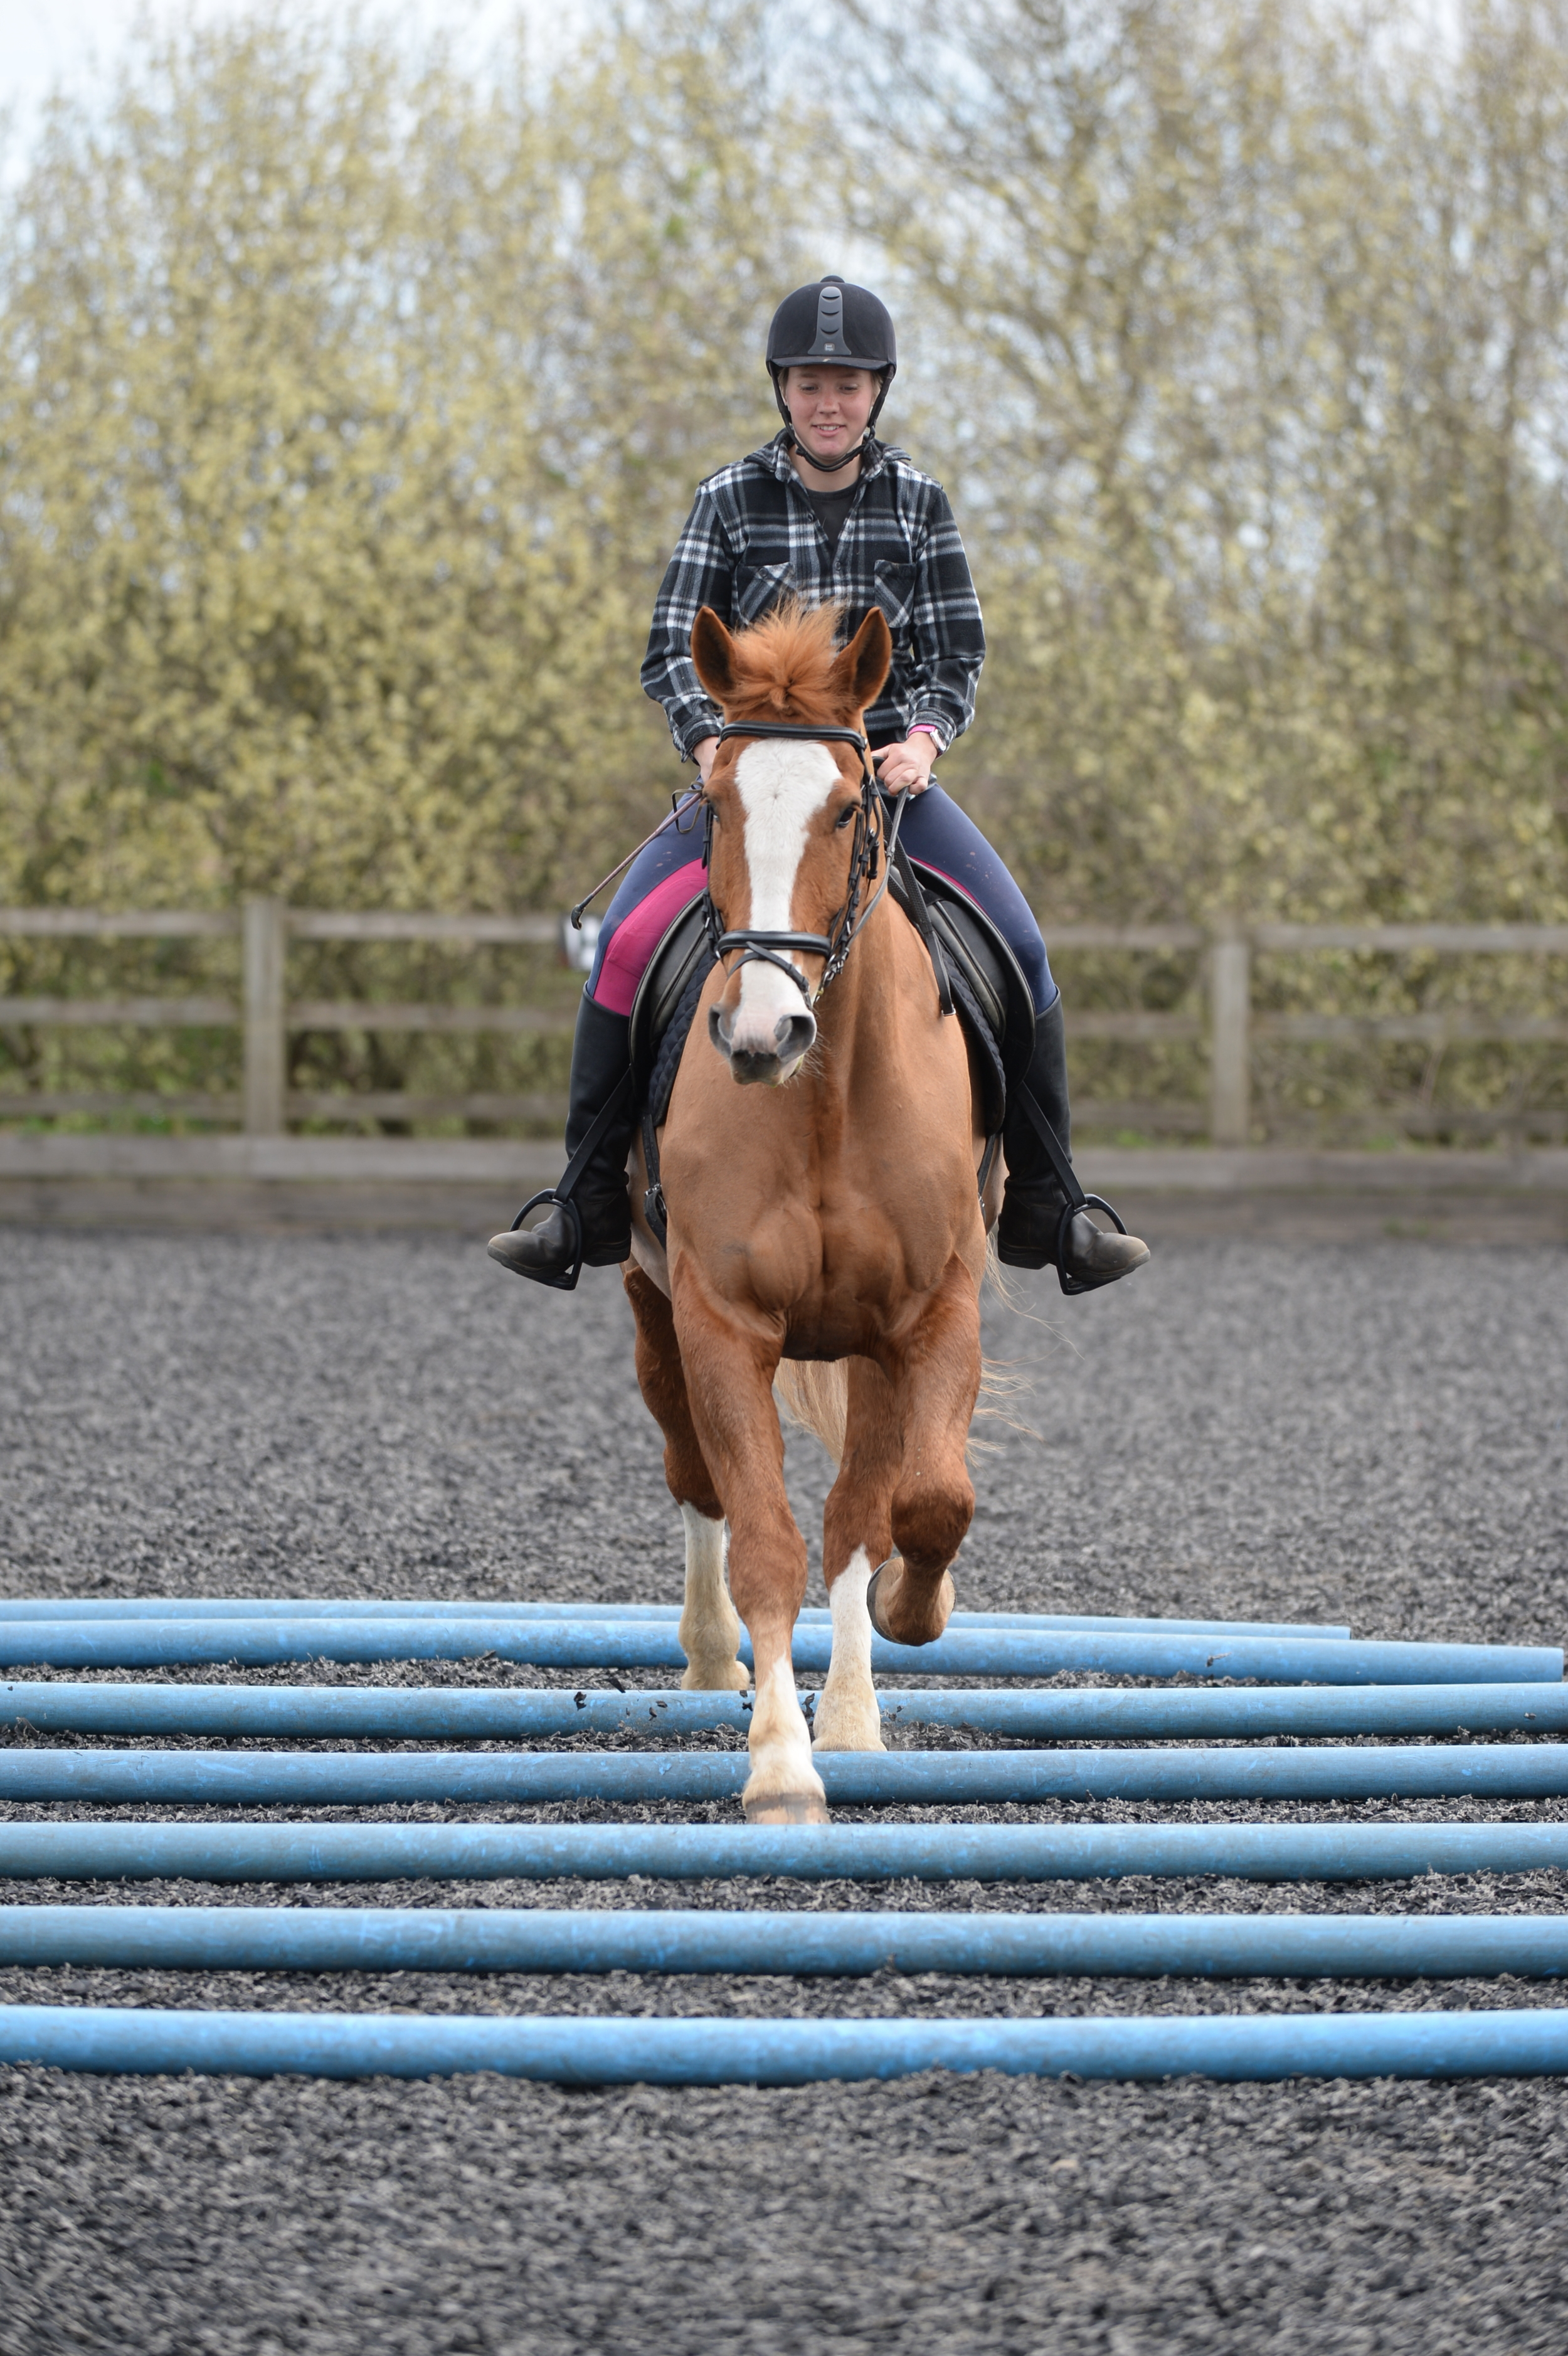 To engage your horse's core for longer periods of time ask your friend to add more poles to the line - to a maximum of seven